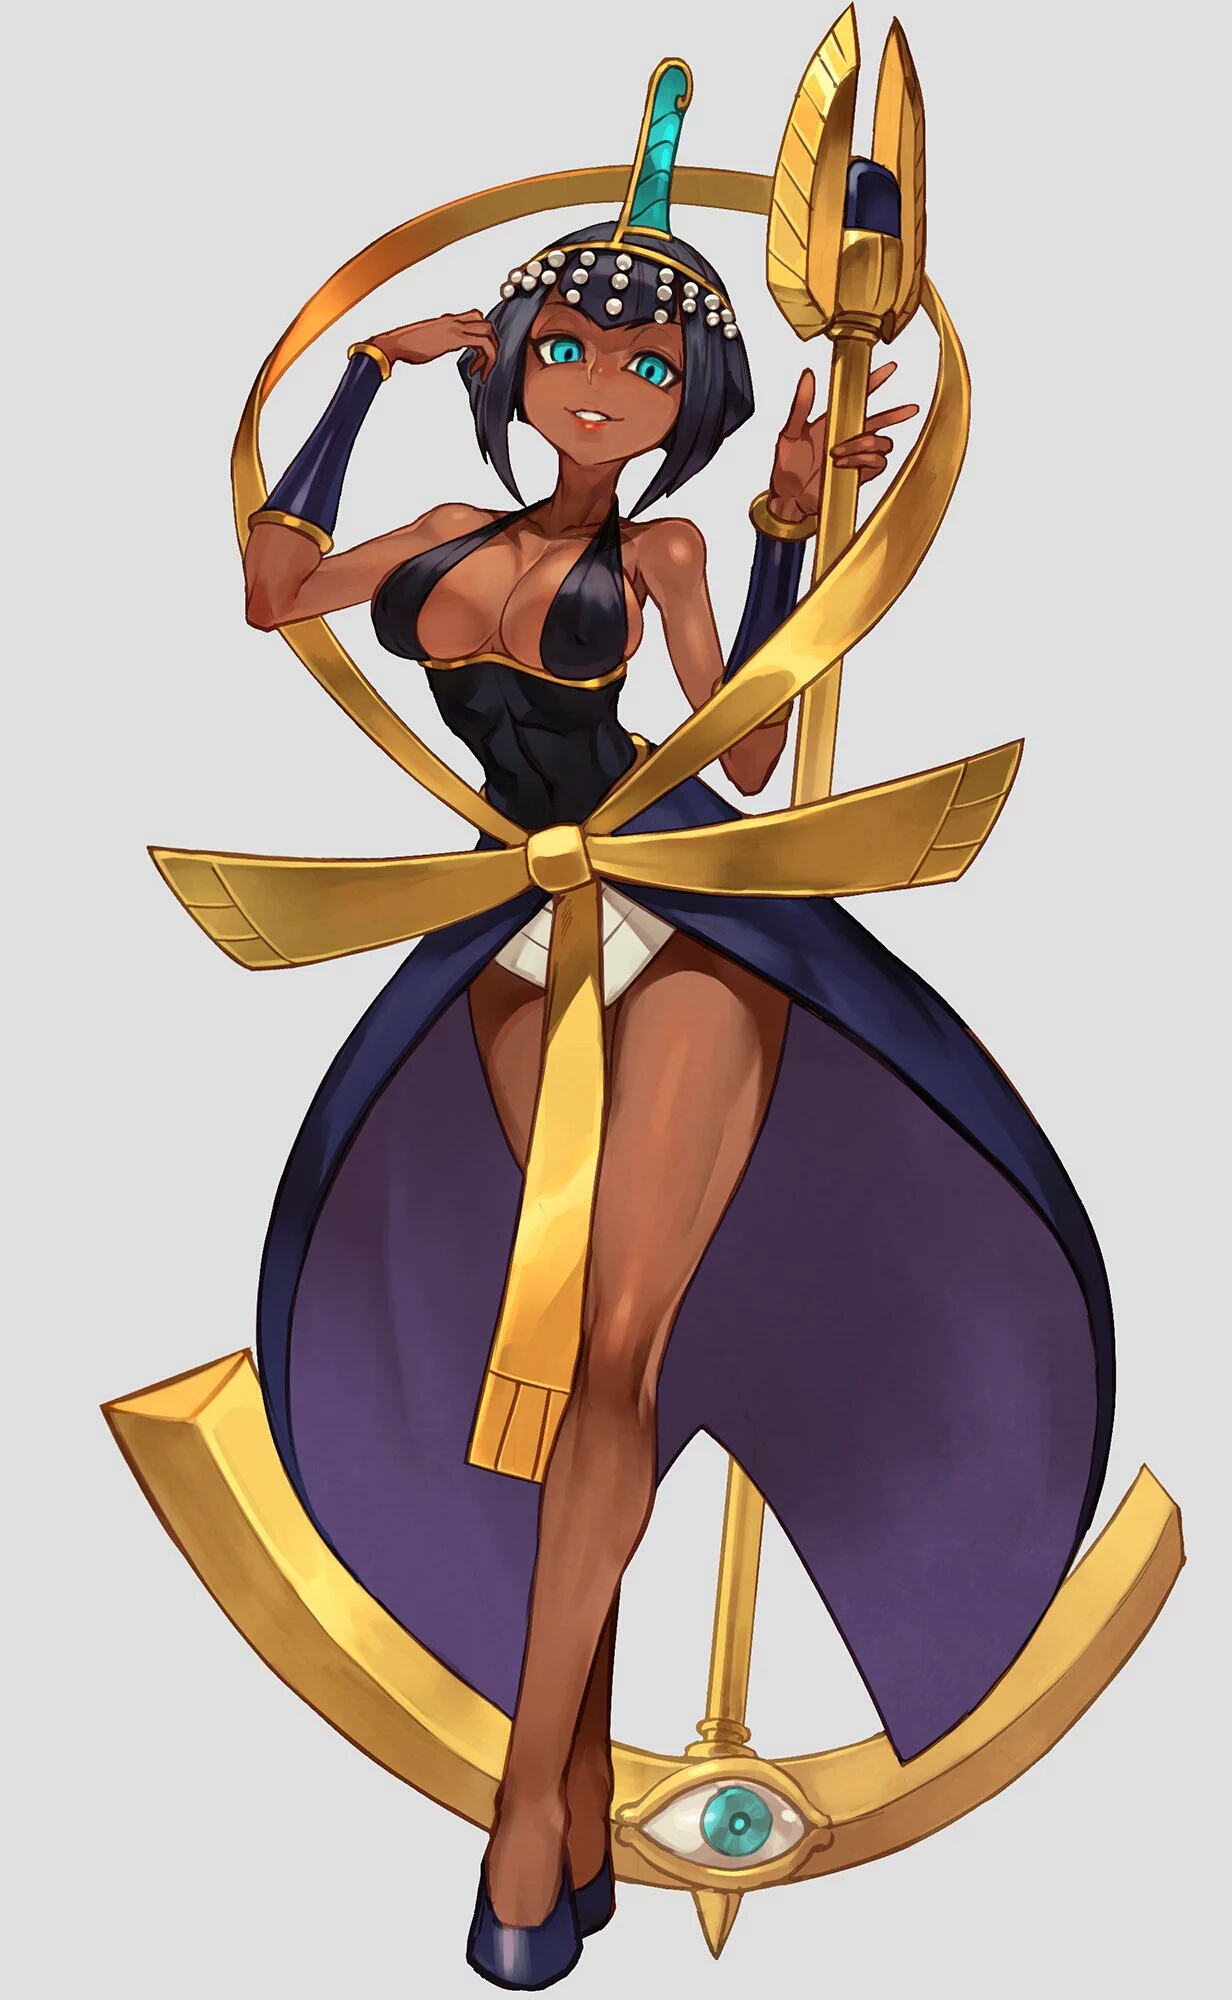 Saiya, The Half -Jinn [APPROVED; 1-5-] [hazard rating C] Eliza-skullgirls-cool-artwork